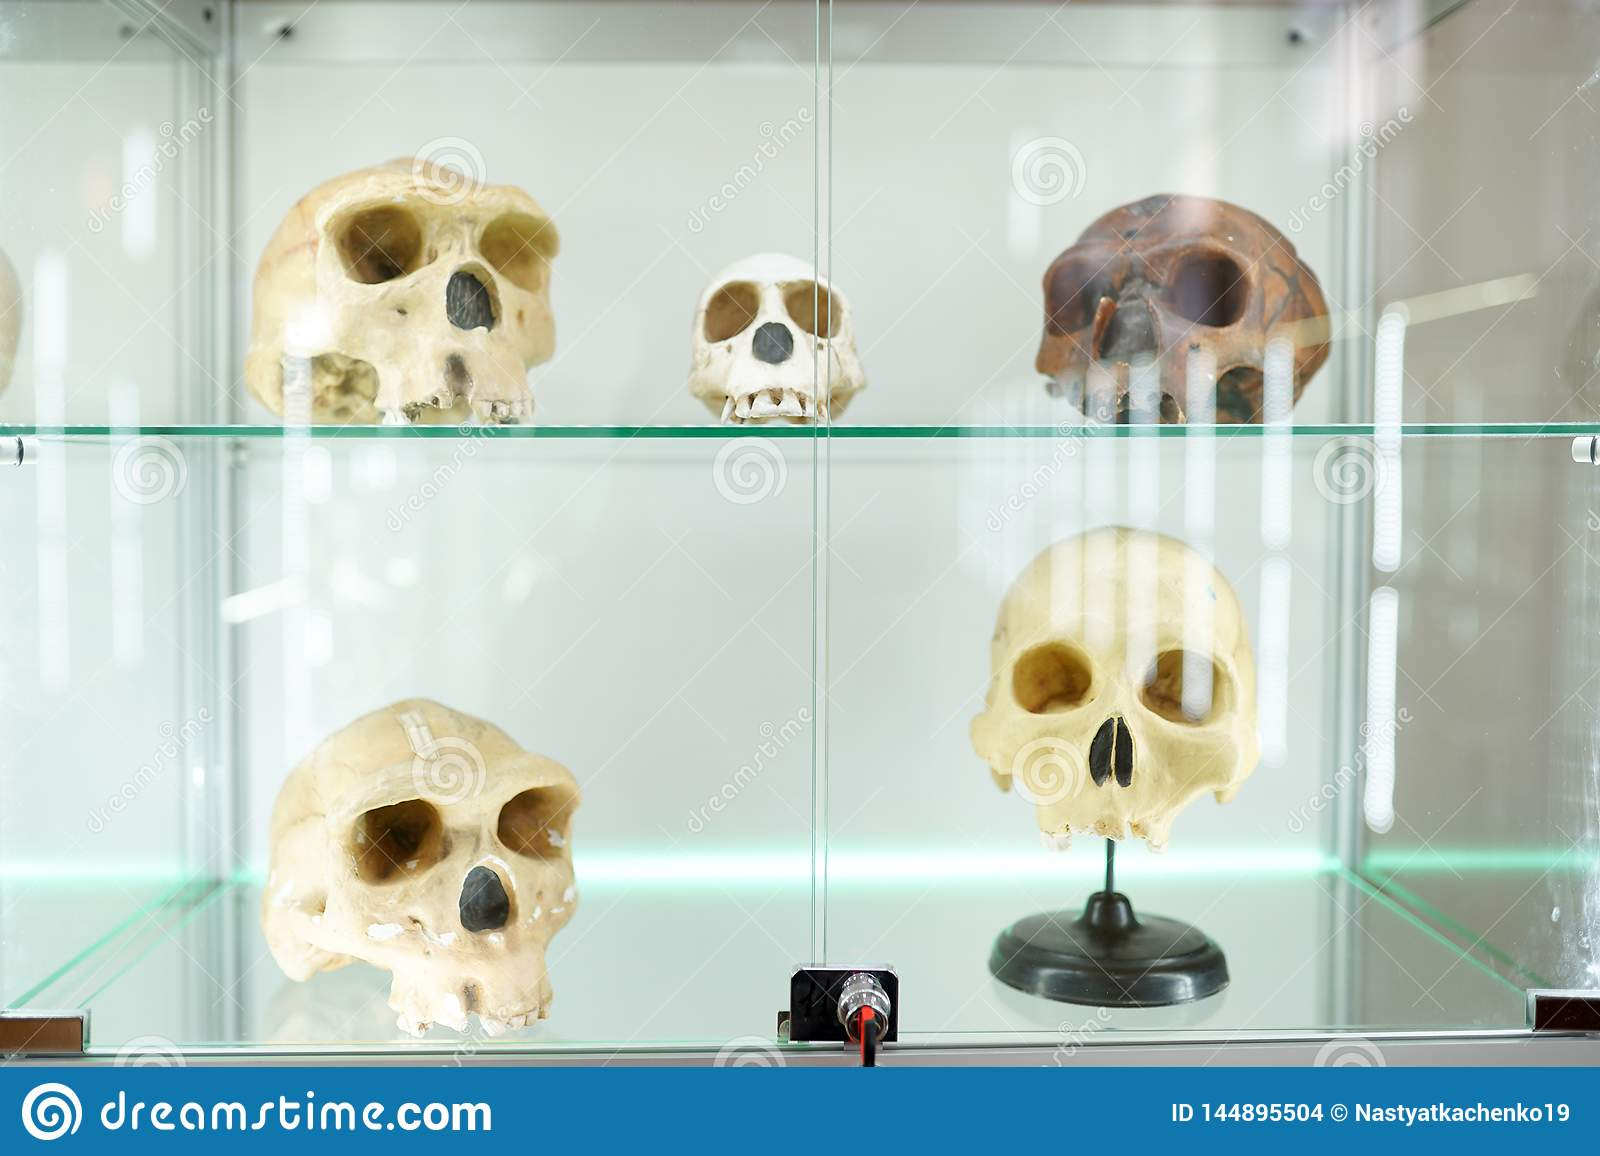 Skulls human anatomy . part of human body on light background. medical science museum